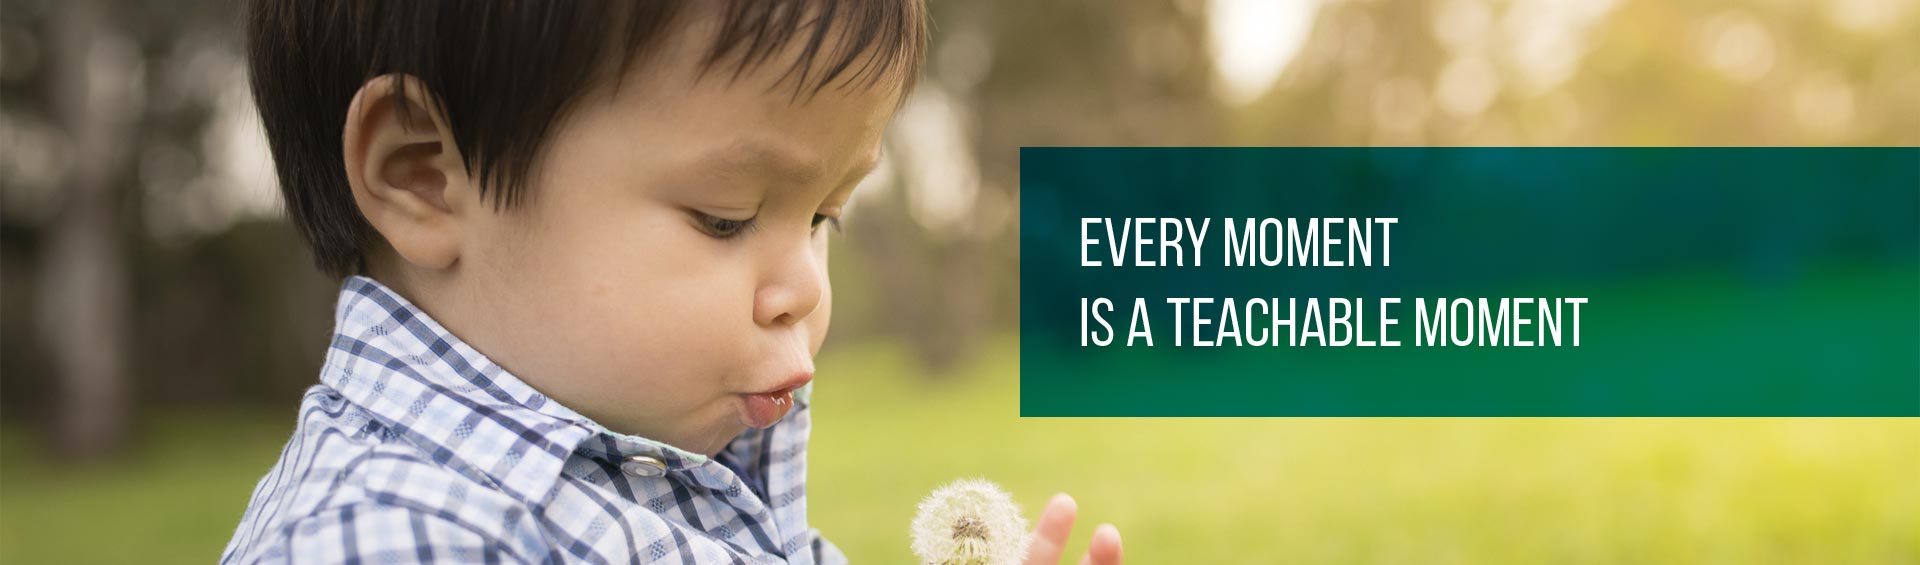 Every moment is a teachable moment